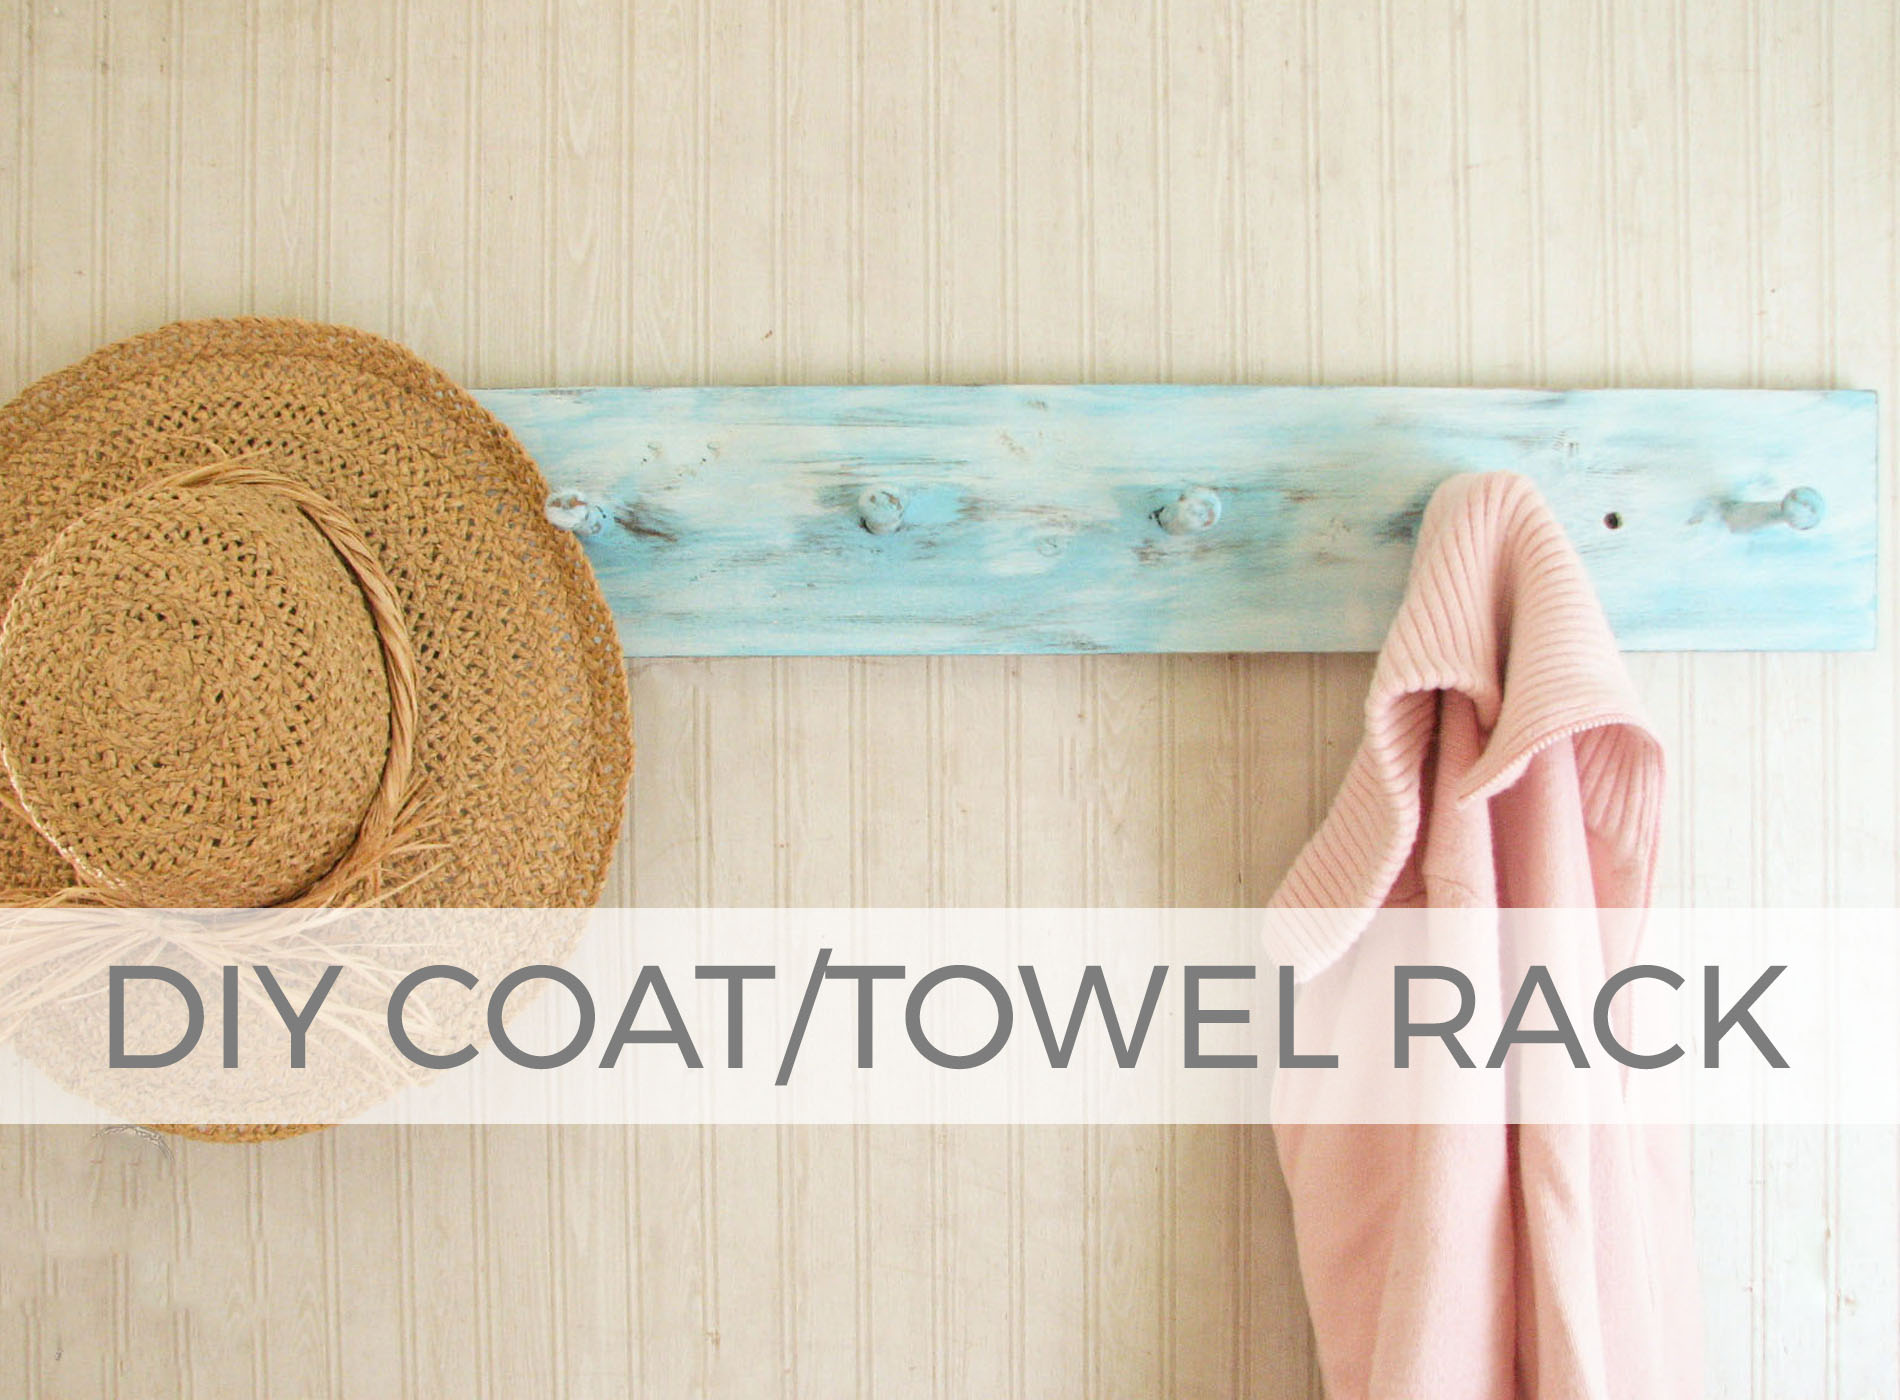 Add charm and storage to your home with this DIY Coat/Towel Rack by Larissa of Prodigal Pieces | prodigalpieces.com #prodigalpieces